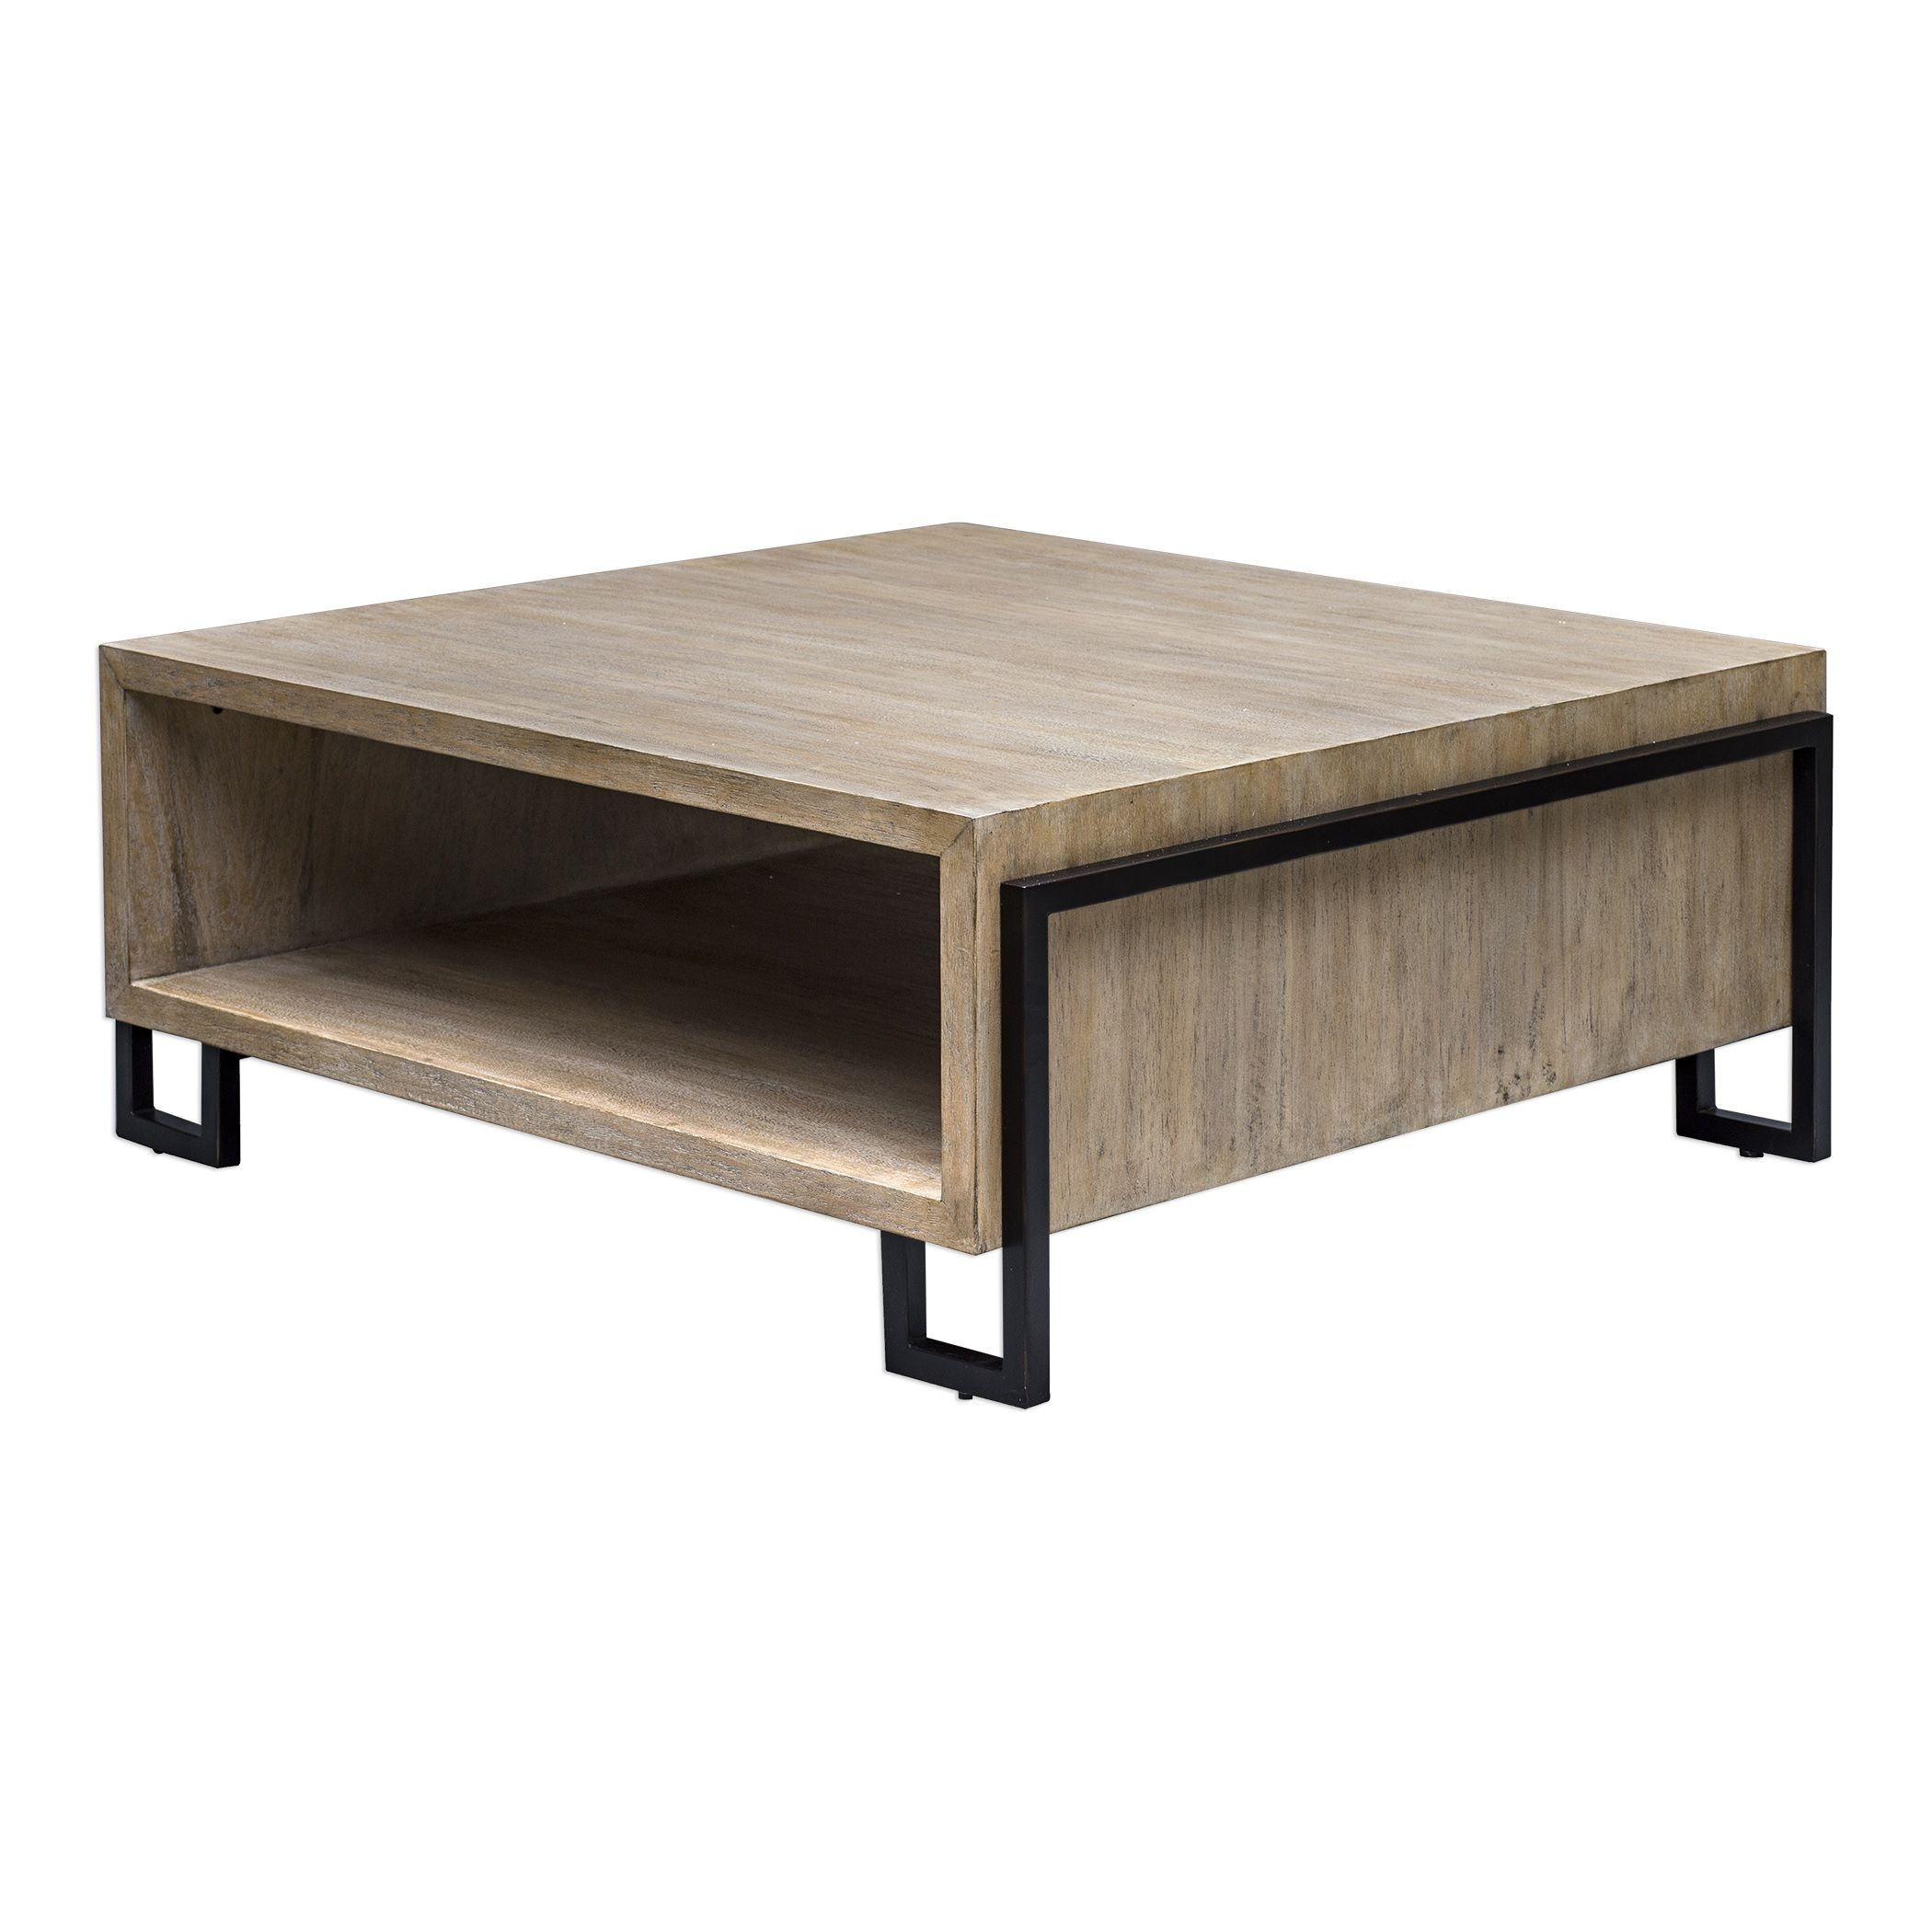 44 Kailor Modern Large Square Coffee Table In Iron Frame With Open Bottom Shelf Large Square Coffee Table Coffee Table Iron Frame Coffee Table [ 2100 x 2100 Pixel ]